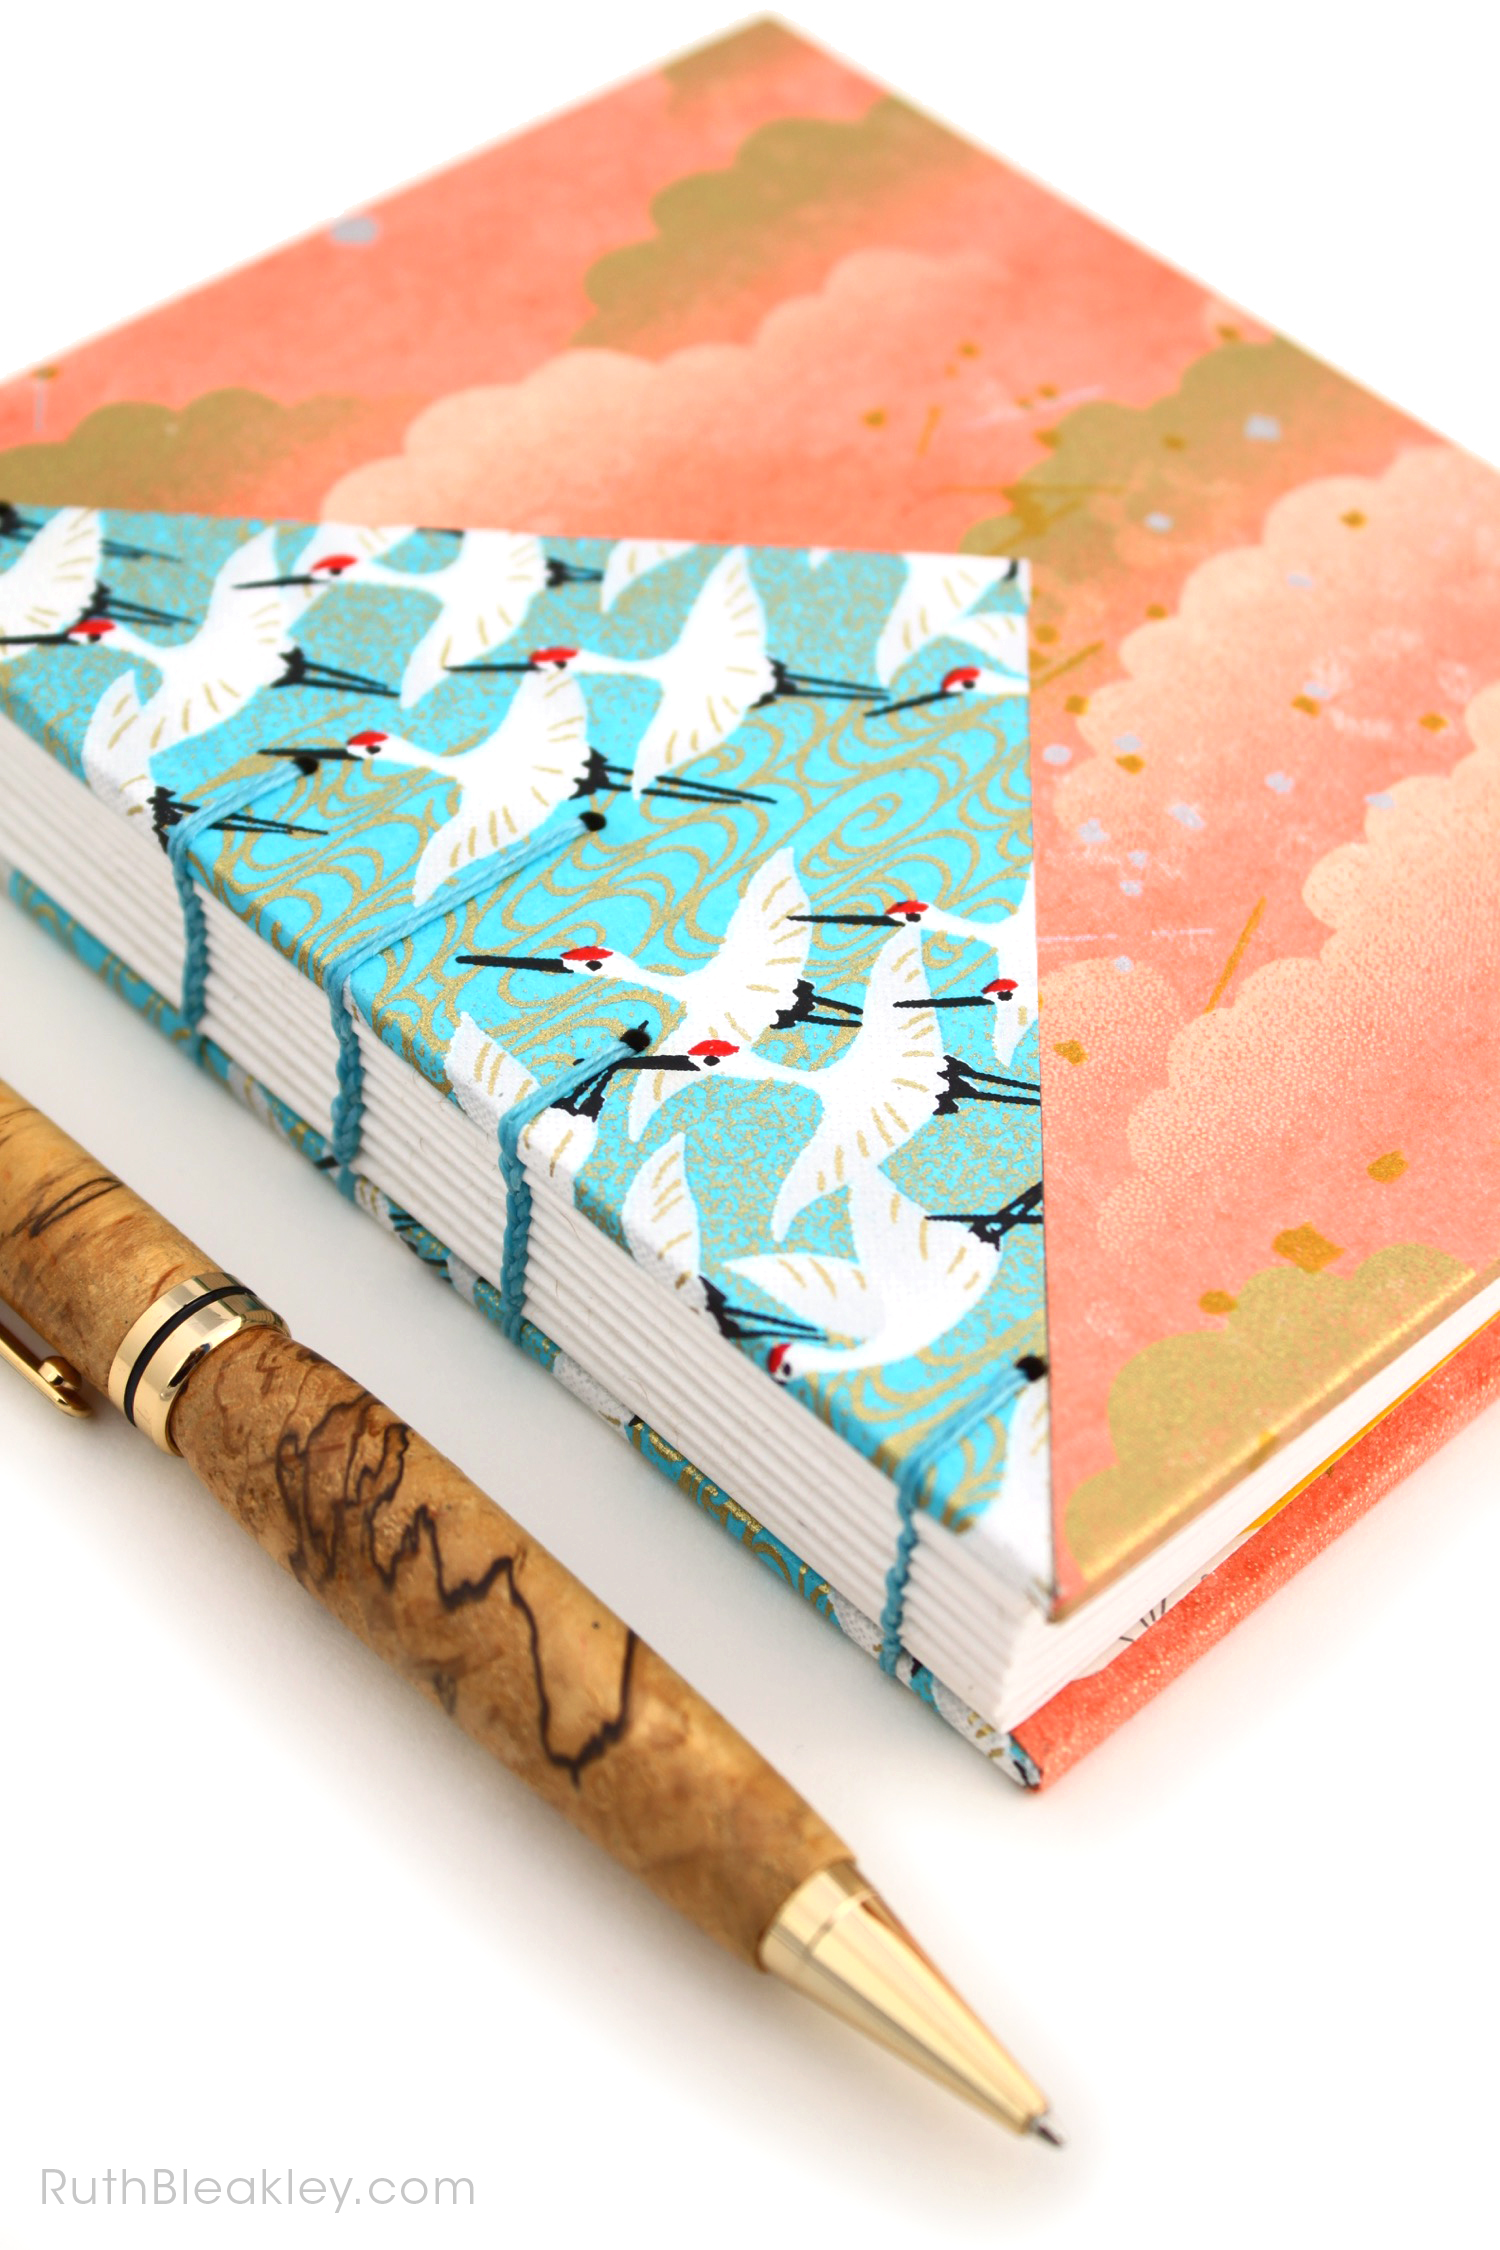 Blue Cranes and Peach Cloud Twin Journals by Ruth Bleakley that lay flat when open - 3